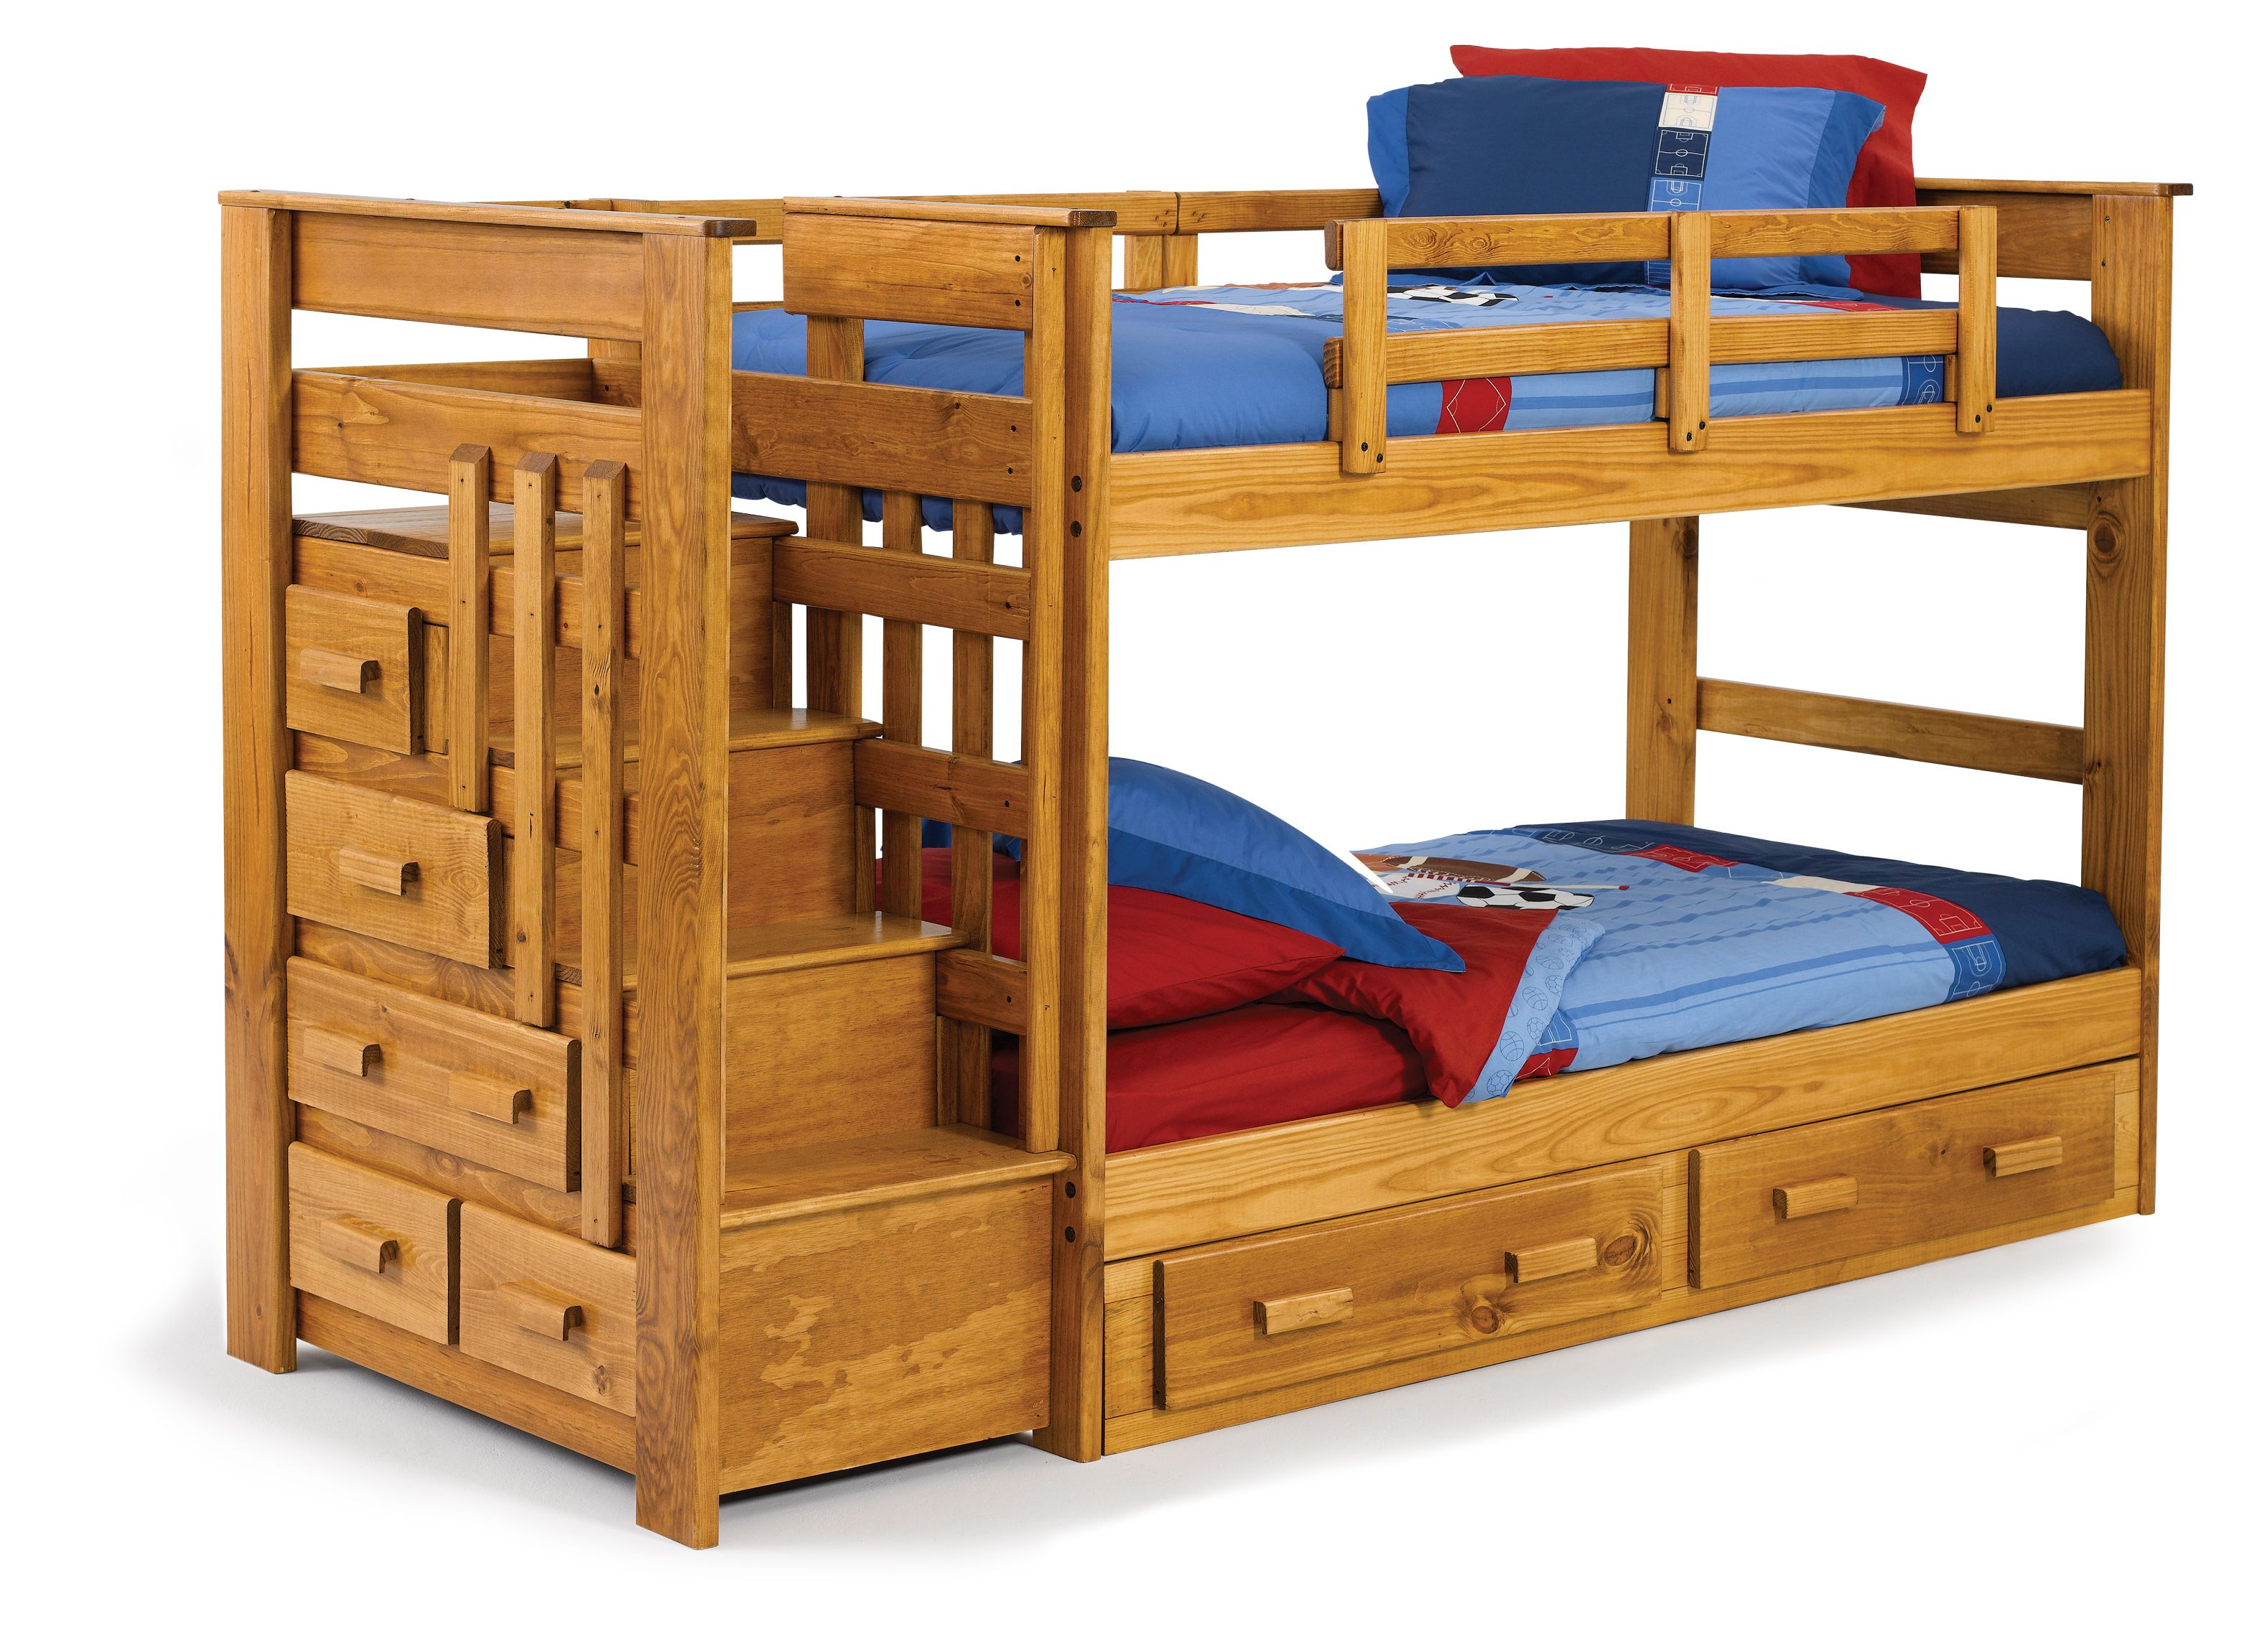 Lovable kids children furnitures set with natural wooden for Kids twin bed with drawers